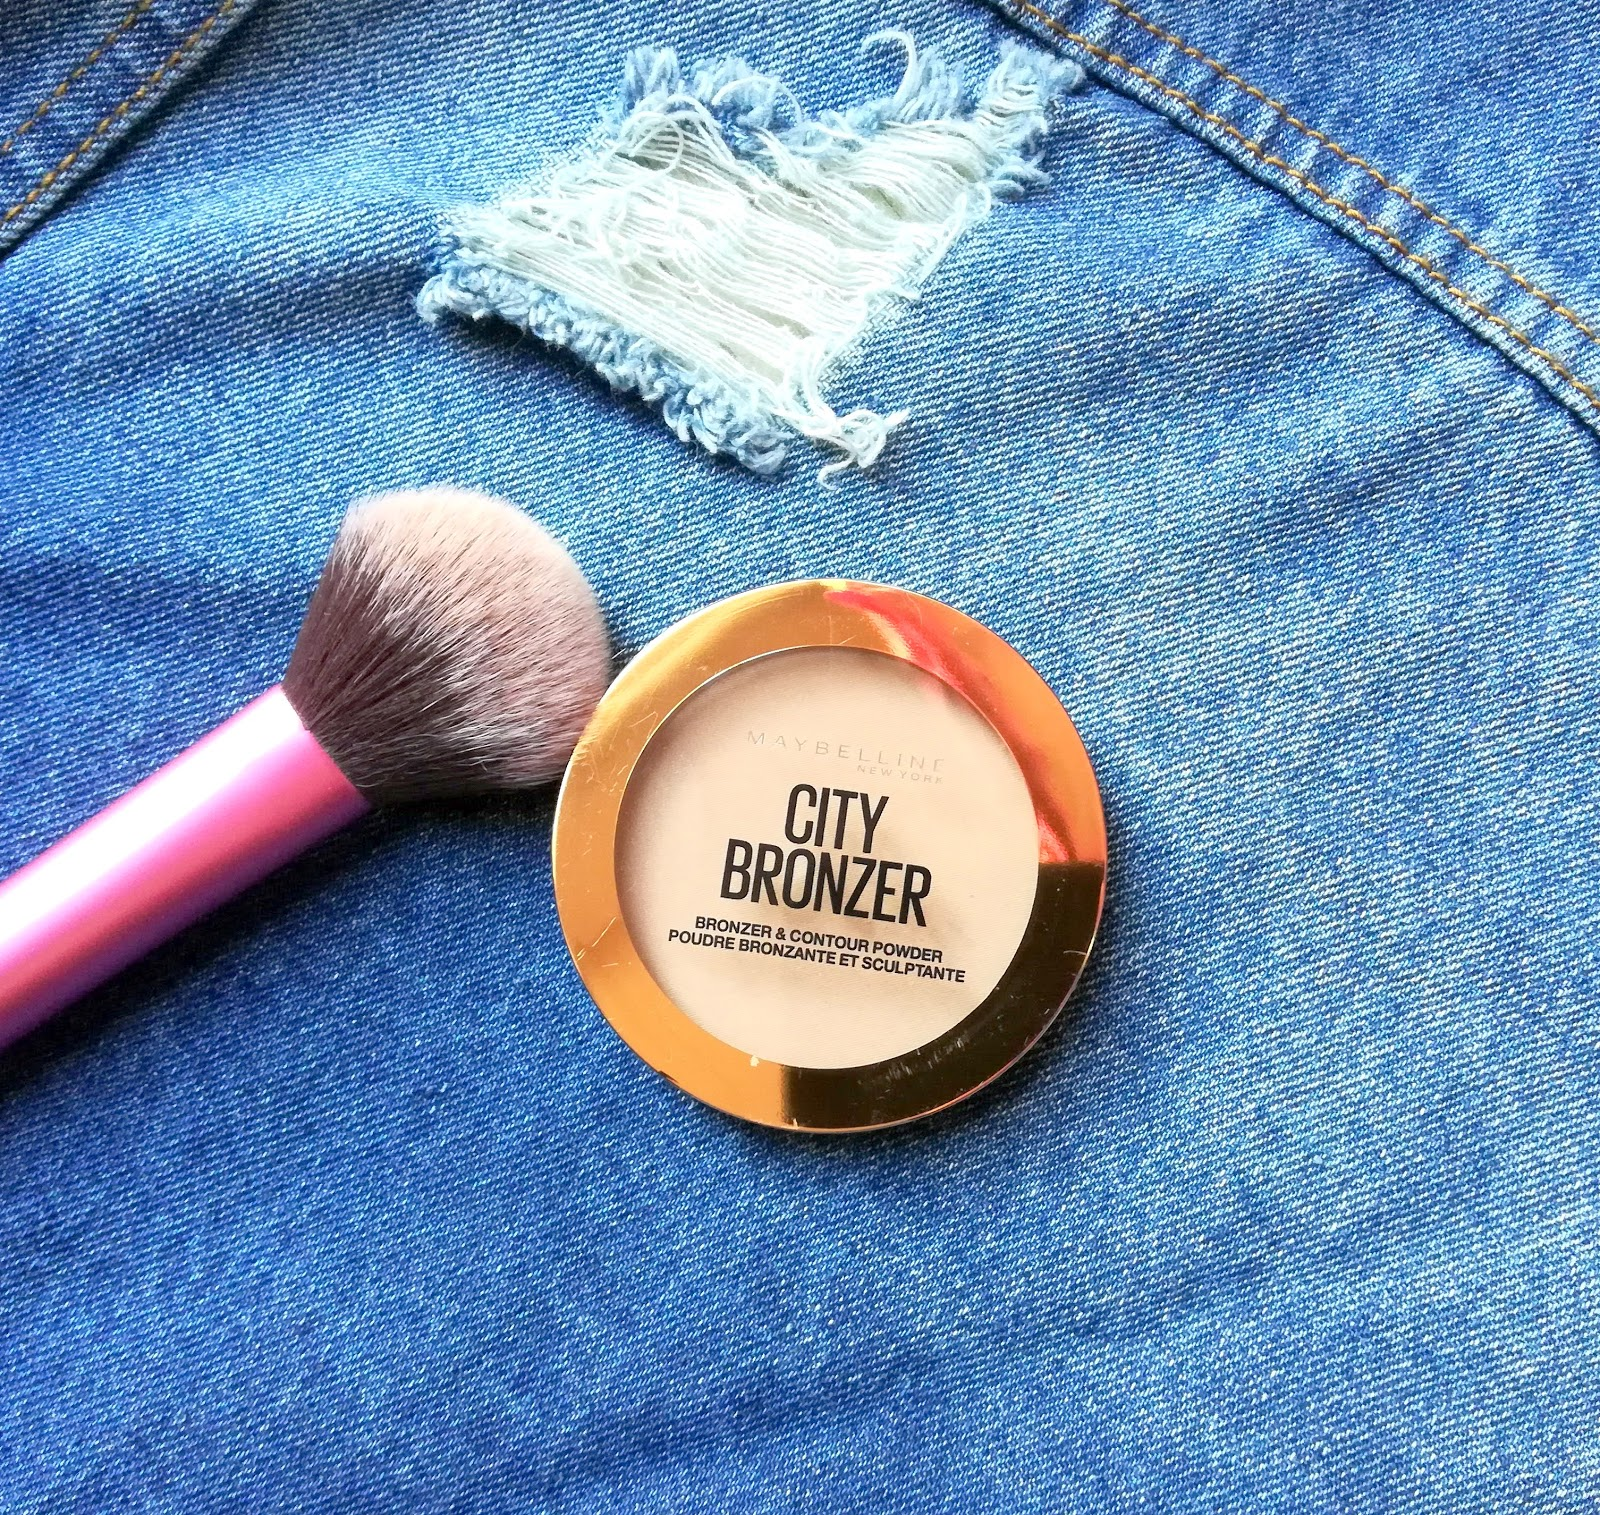 Le CITY BRONZER de MAYBELLINE